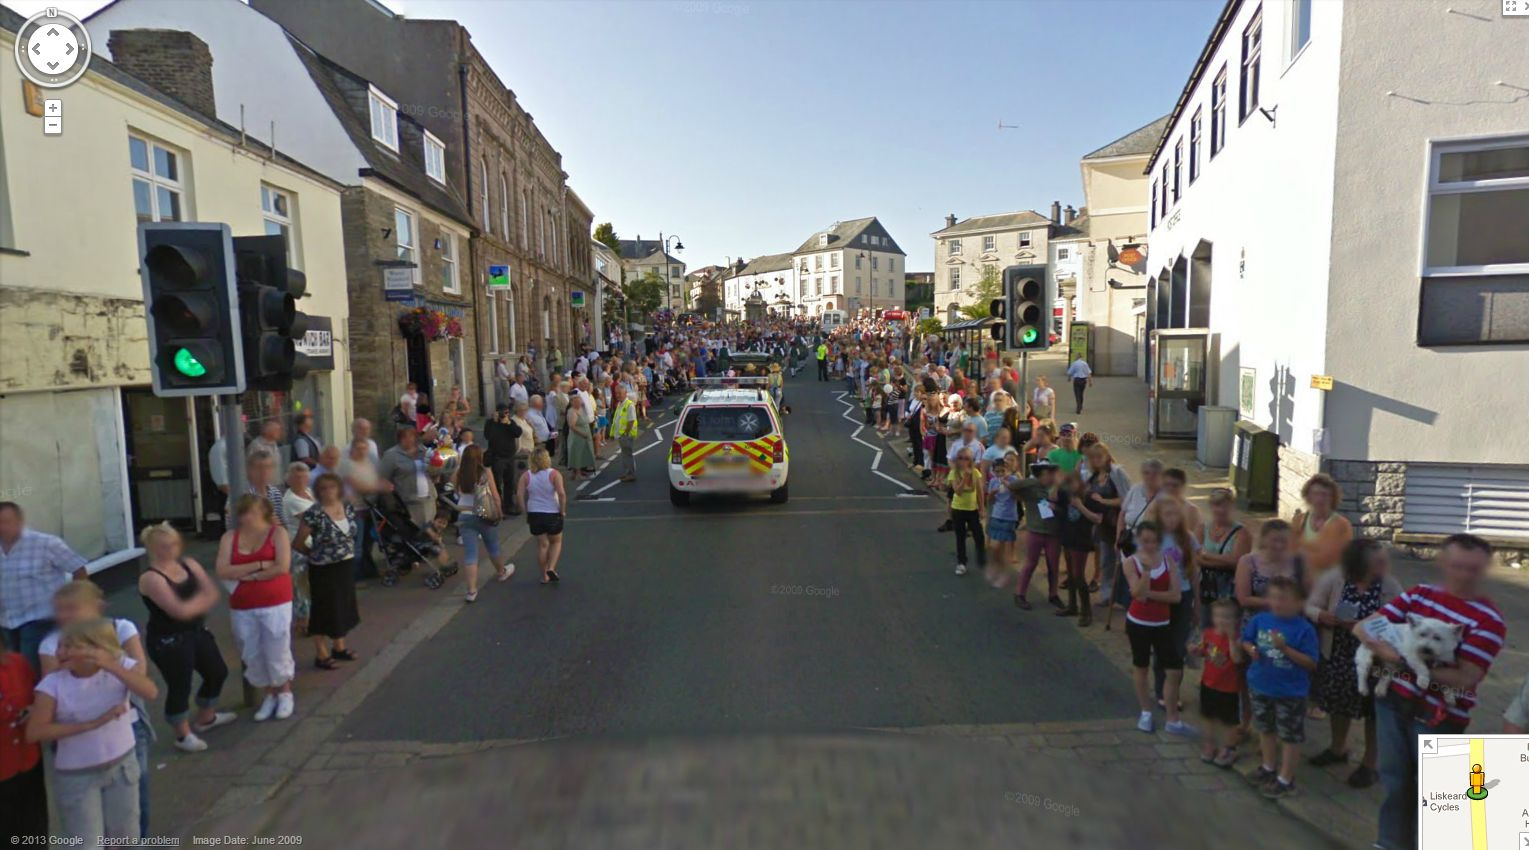 Google Street View Caught in a Parade Again